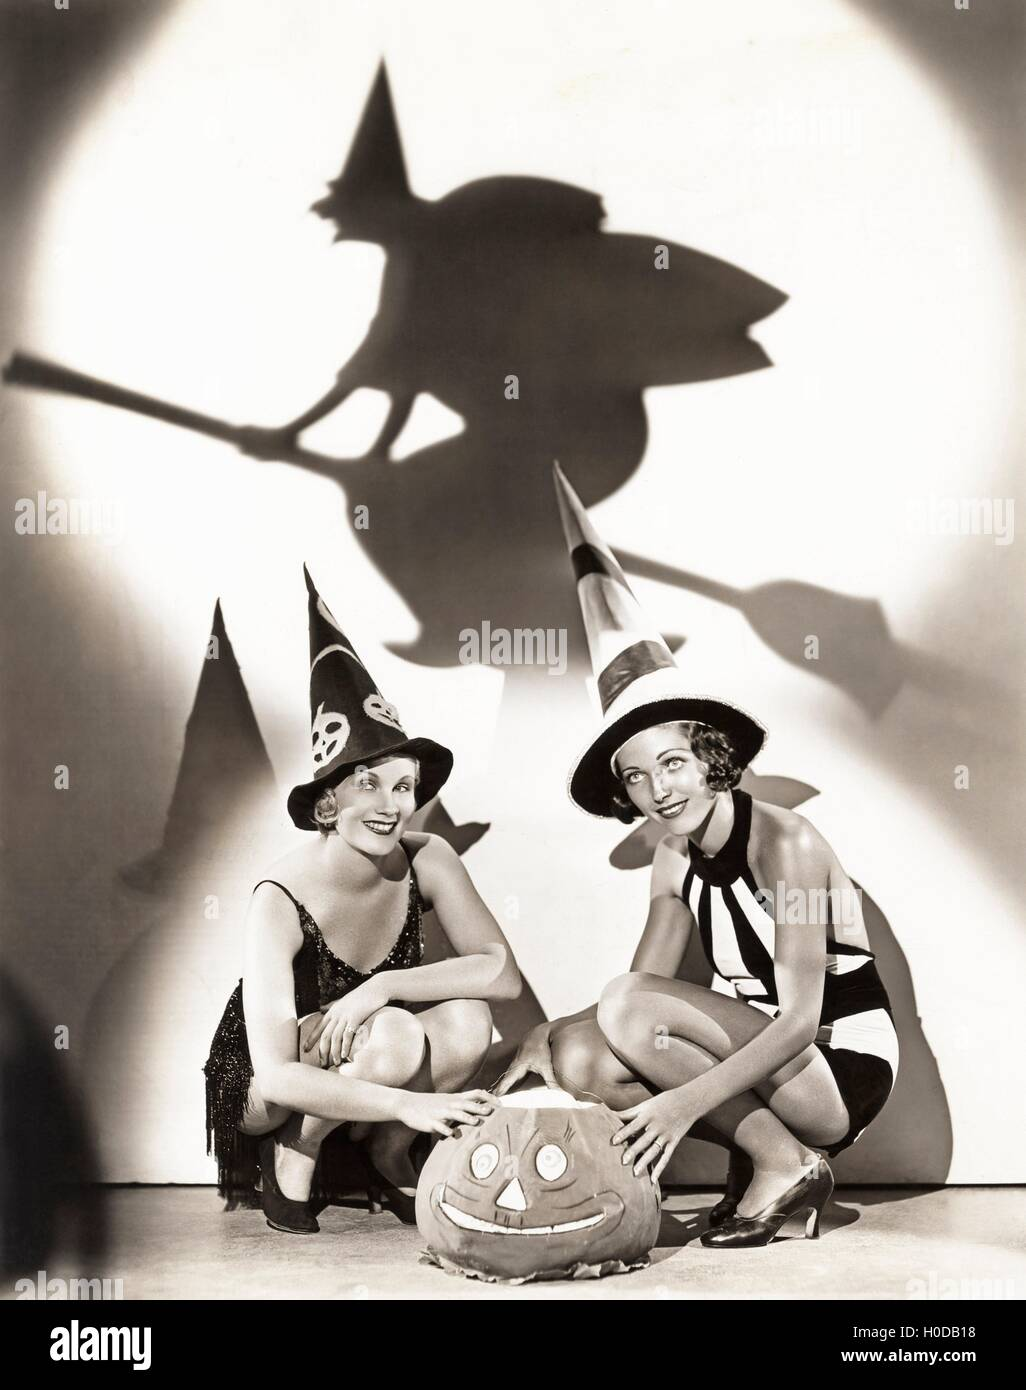 Two women celebrate a bewitching Halloween - Stock Image